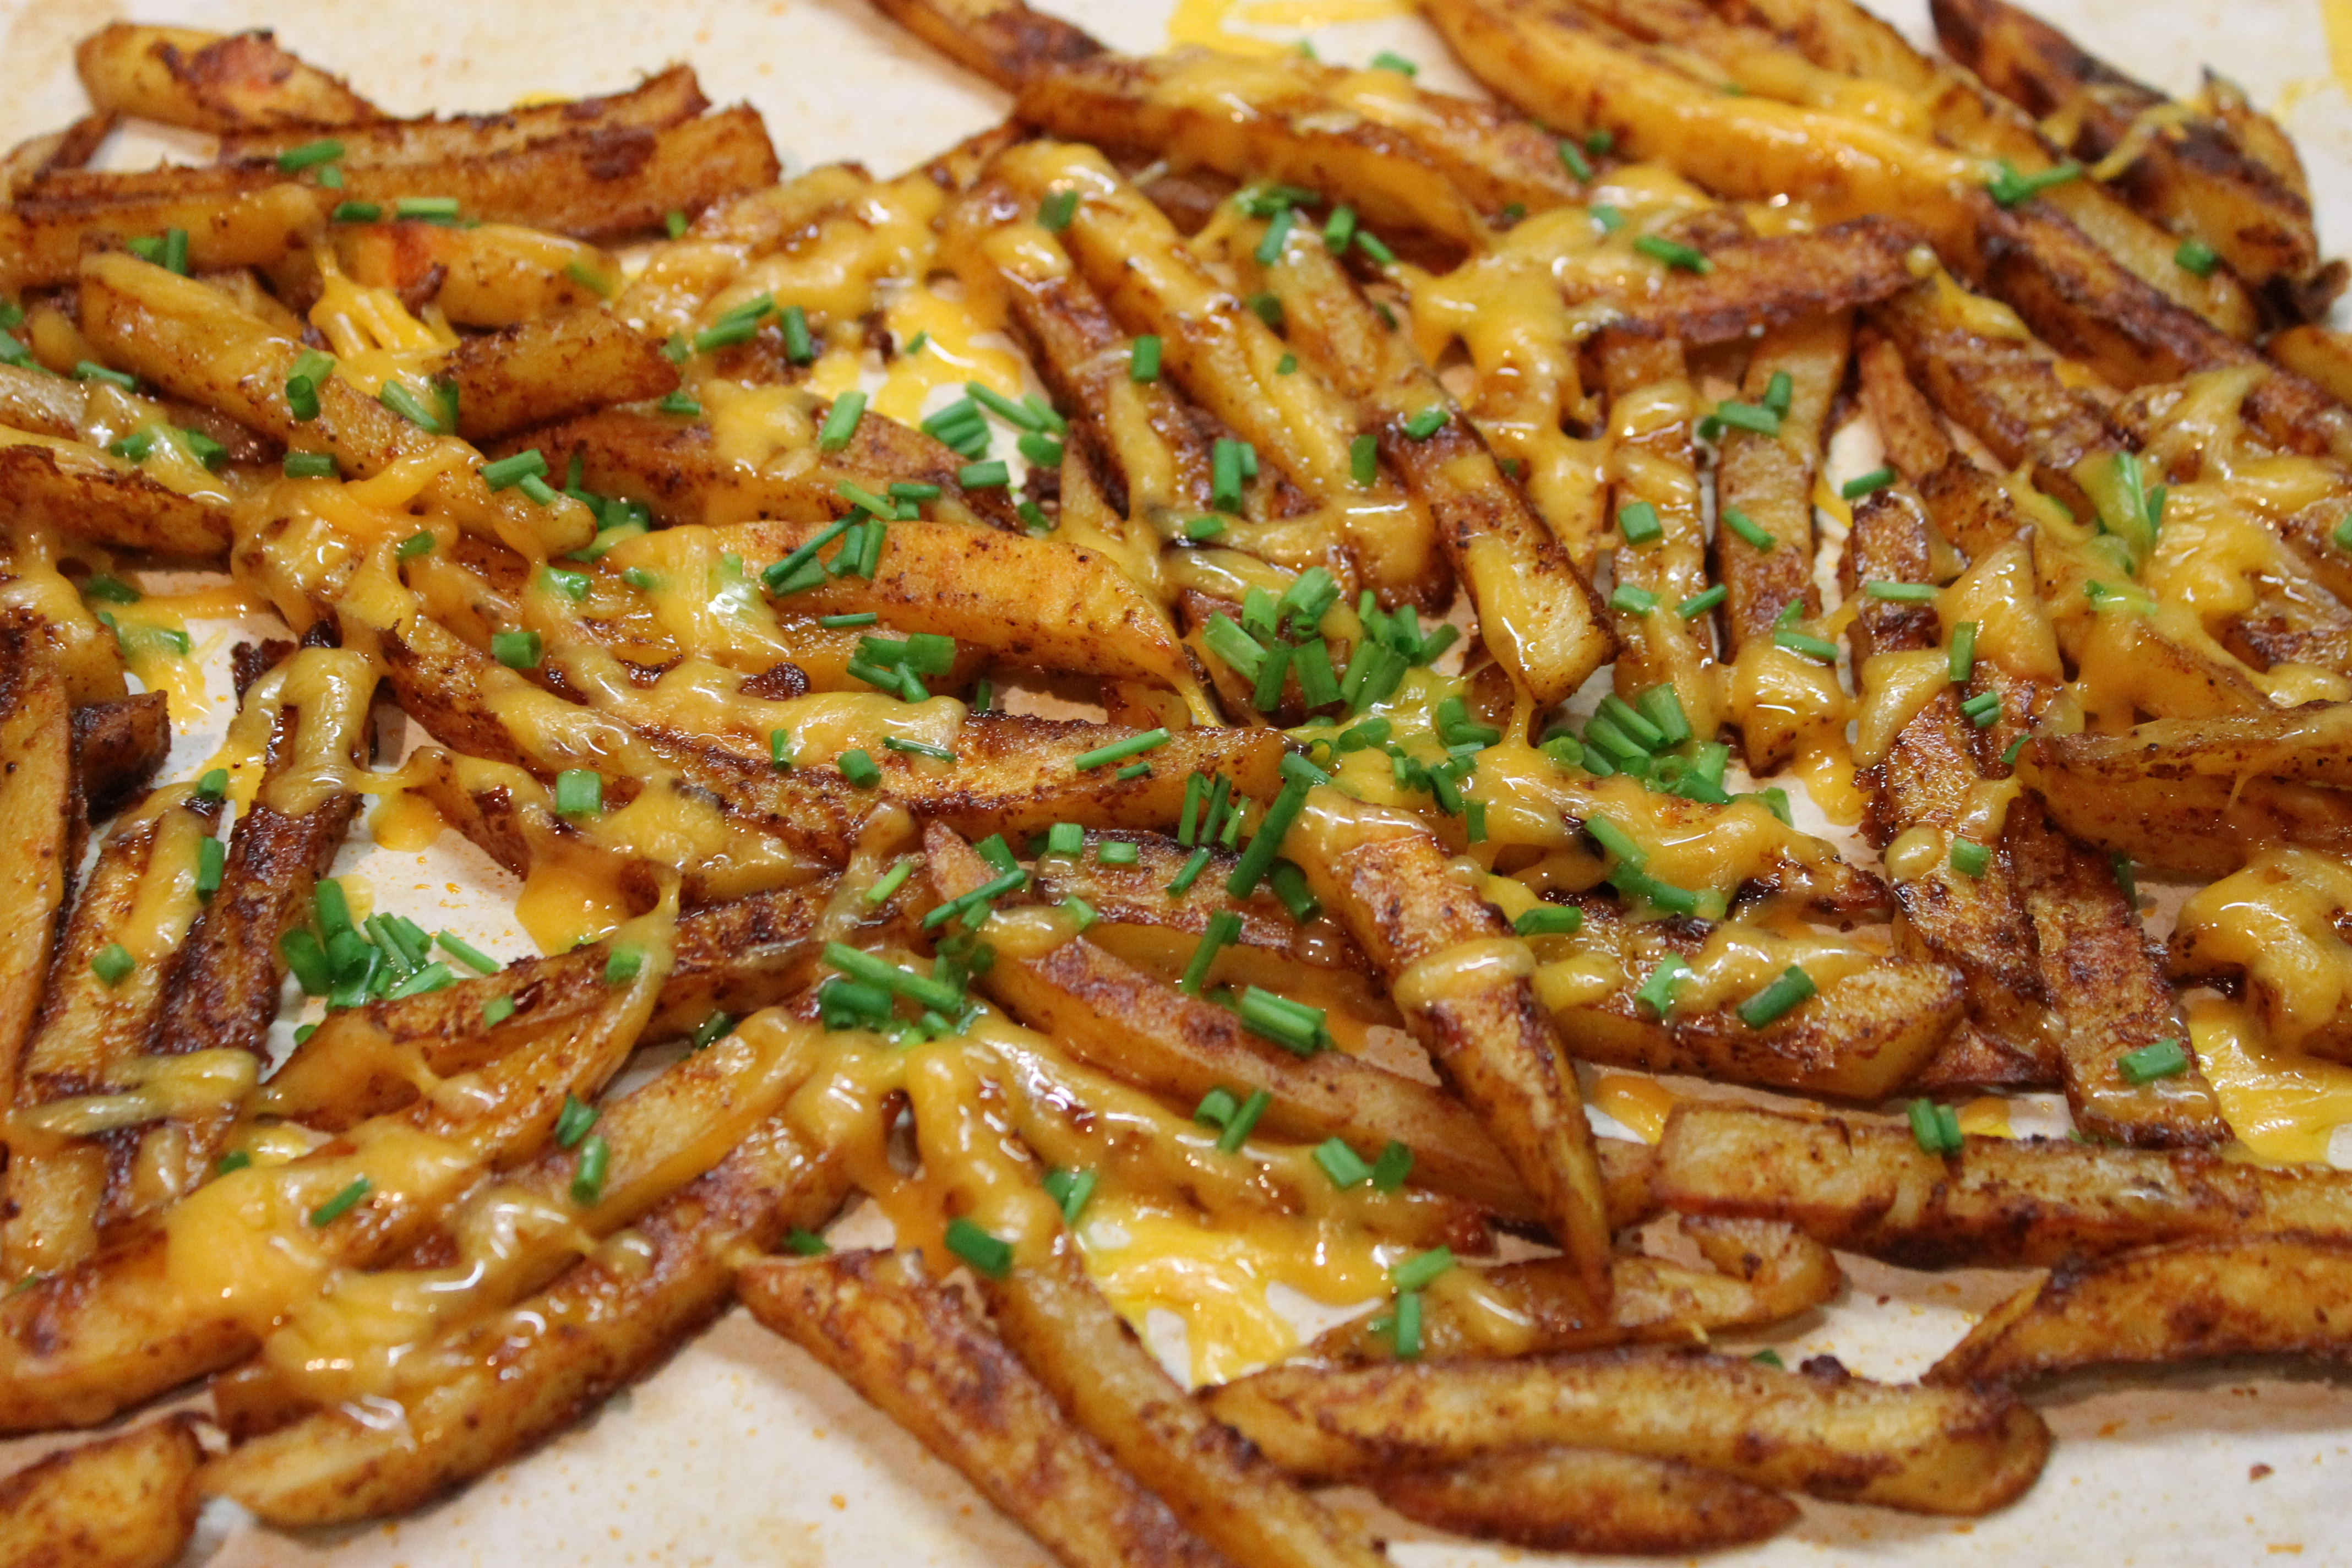 zucchini fries baked sweet potato fries crispy baked french fries ...